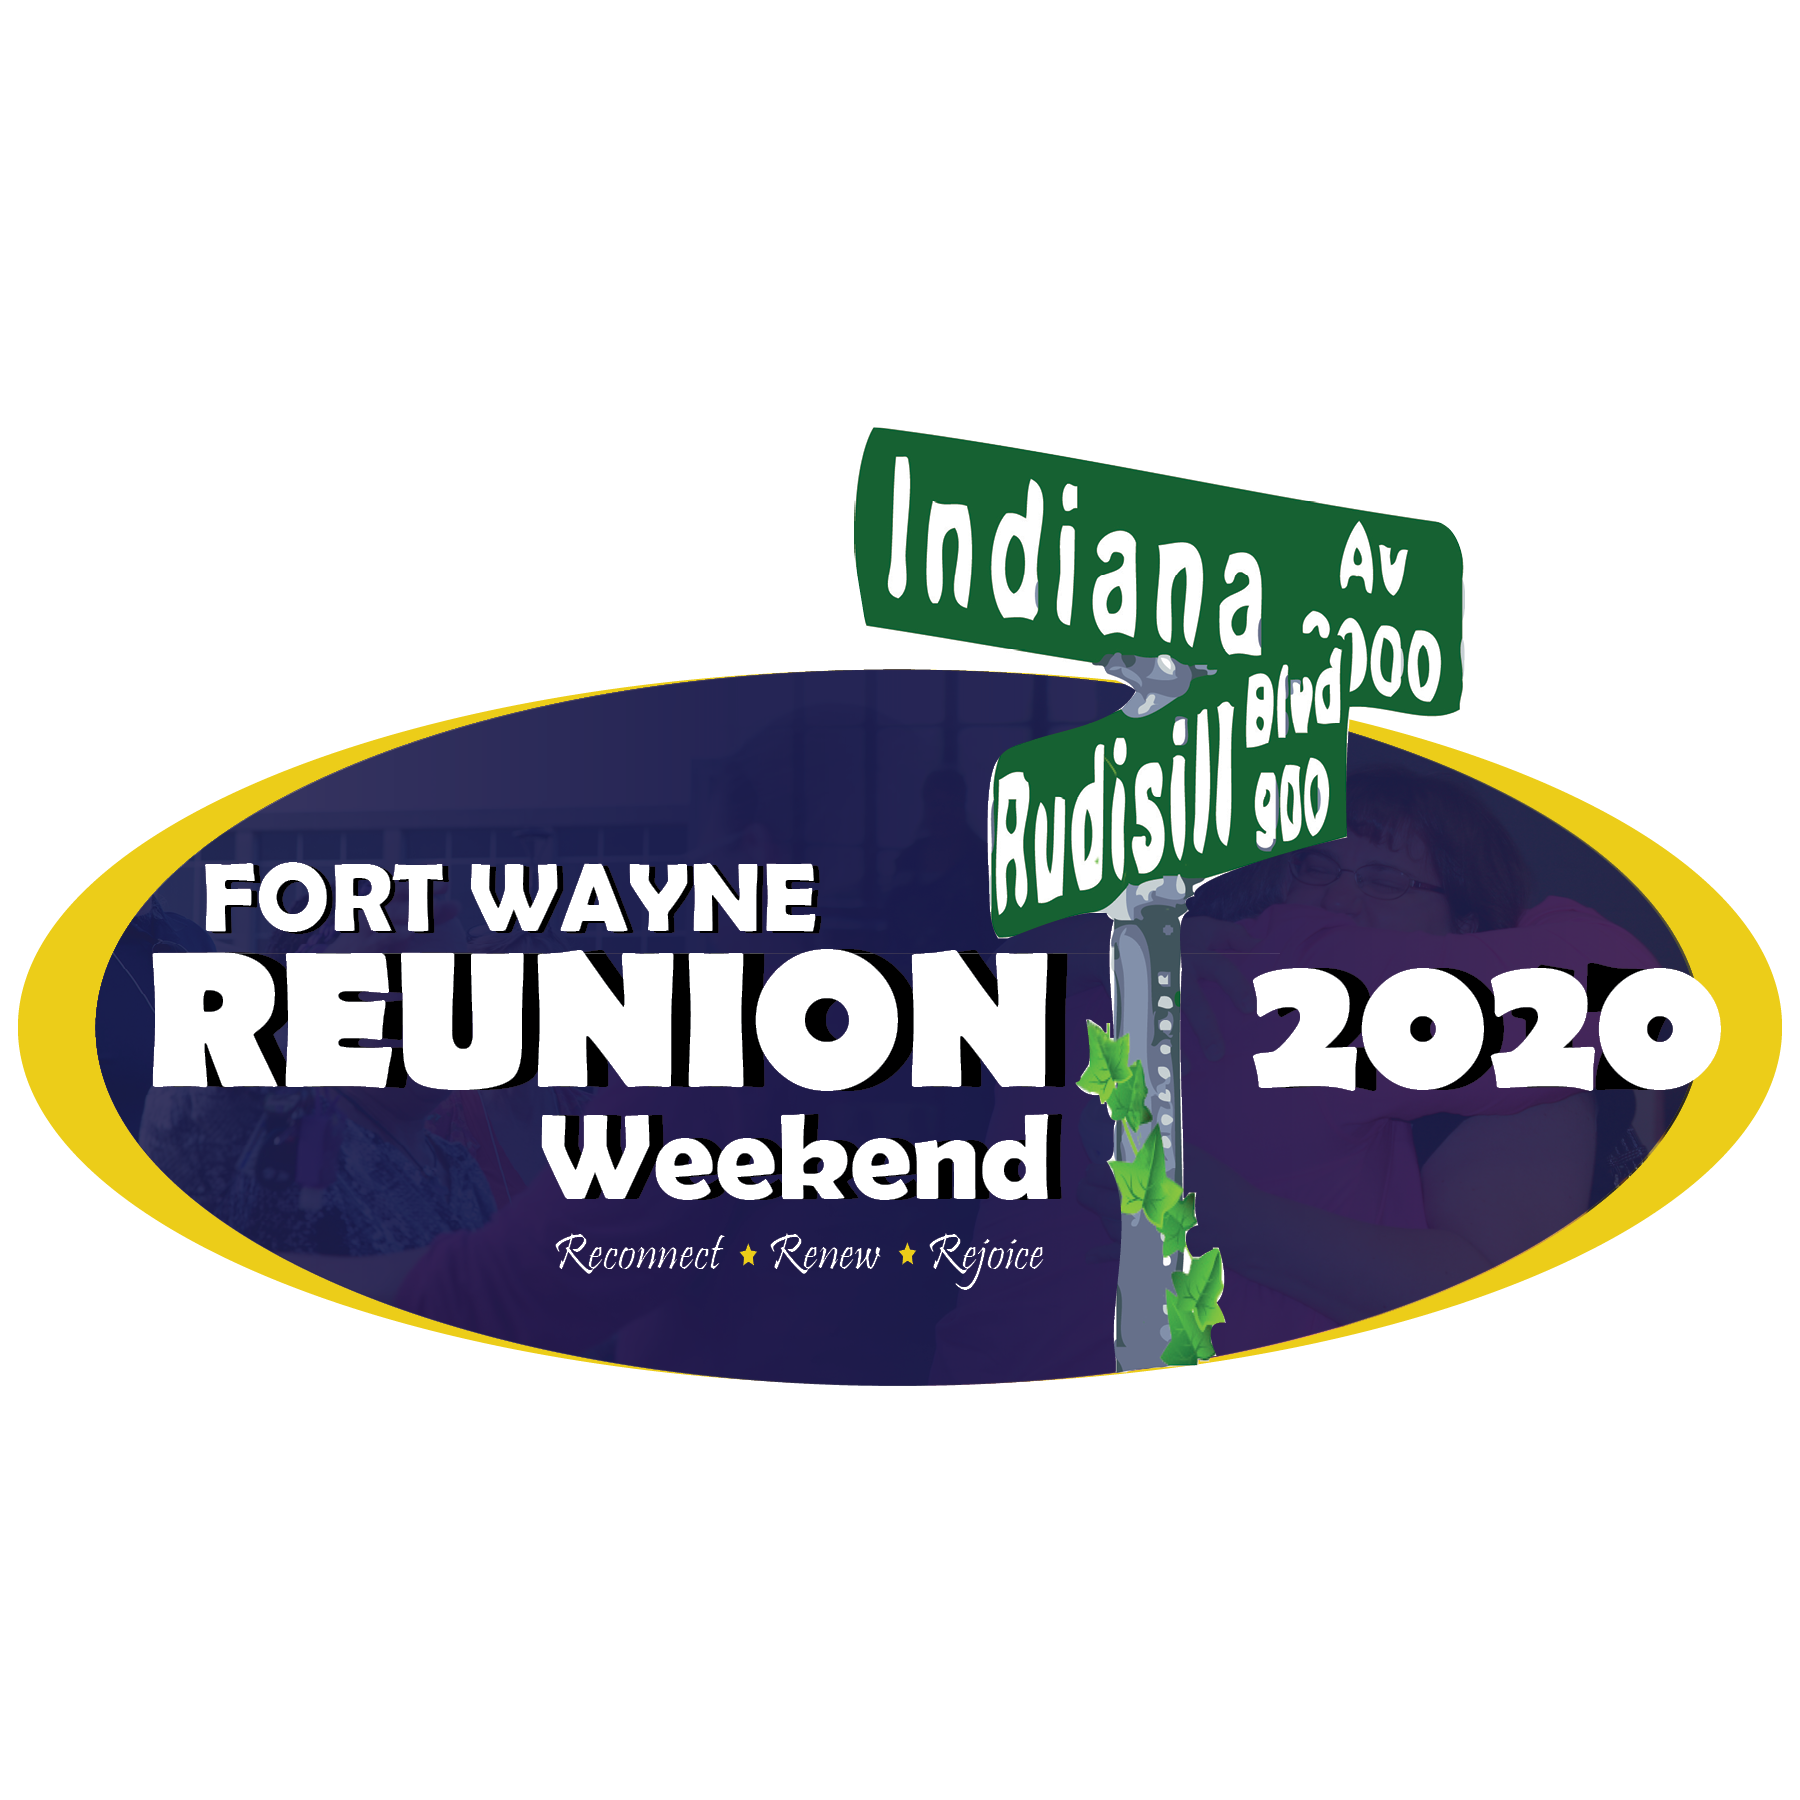 FW Reunion Weekend Logo Samples 2020